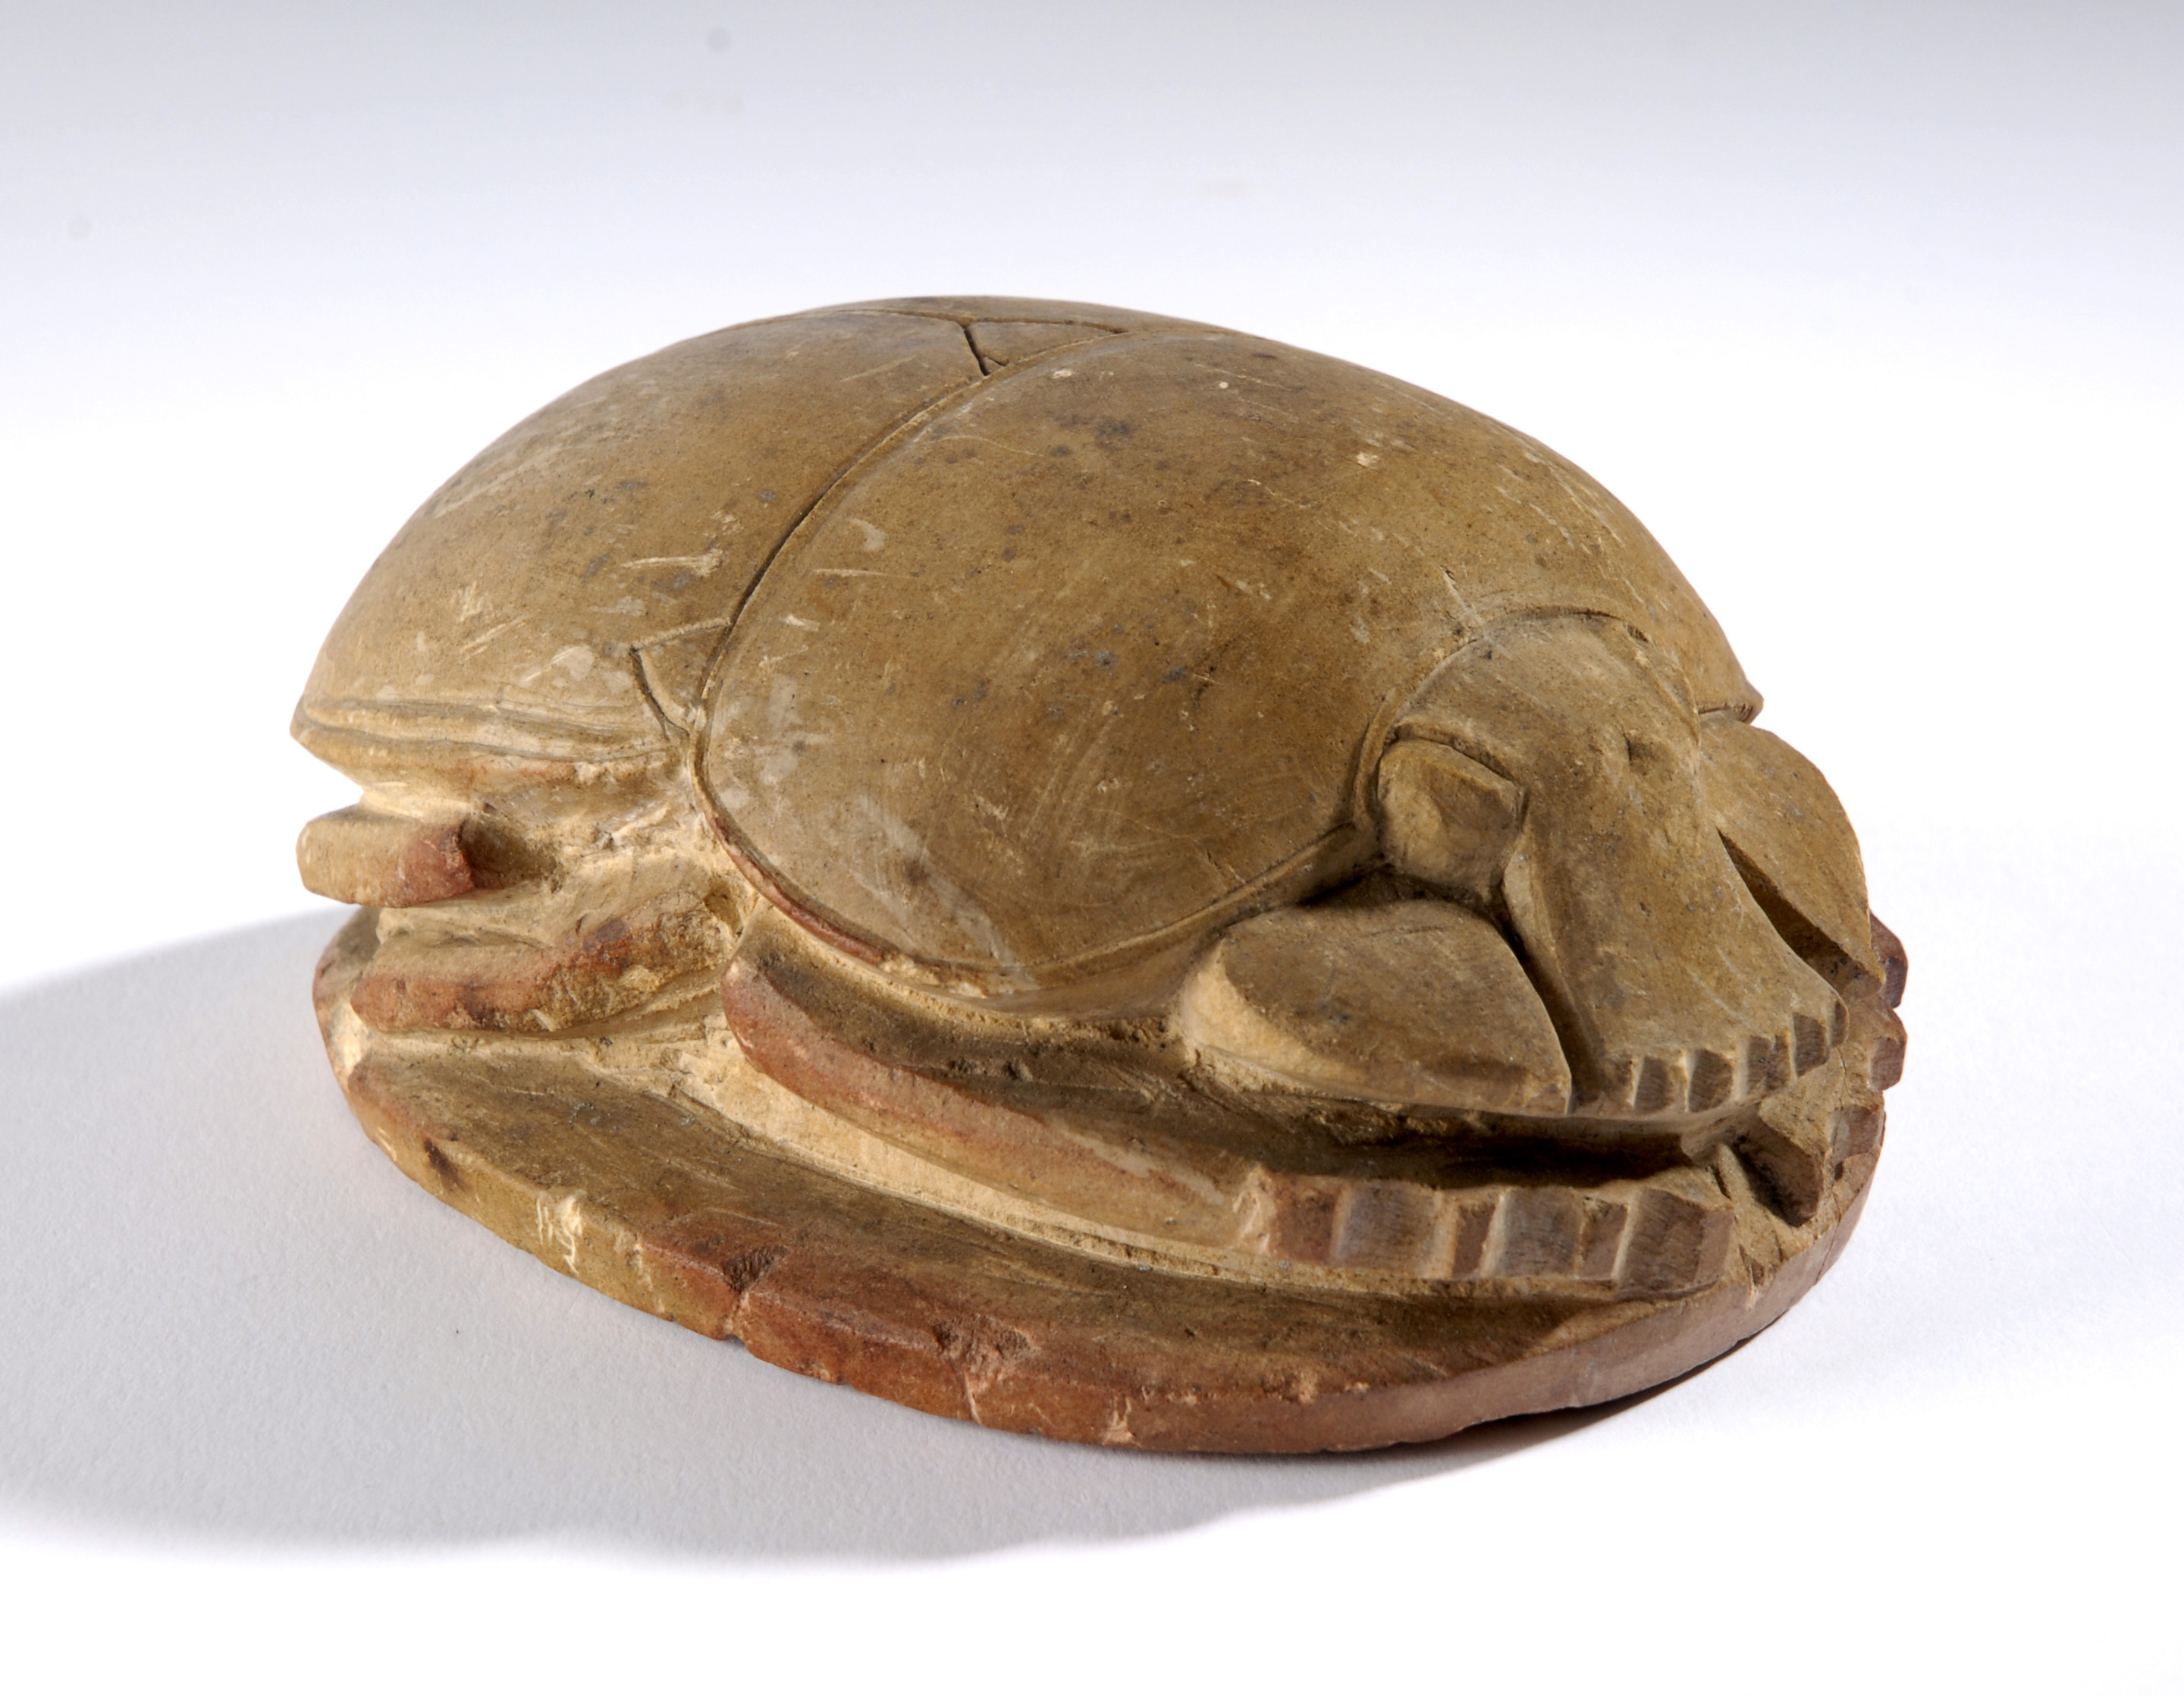 Pale brown amulet in the shape of a scarab beetle